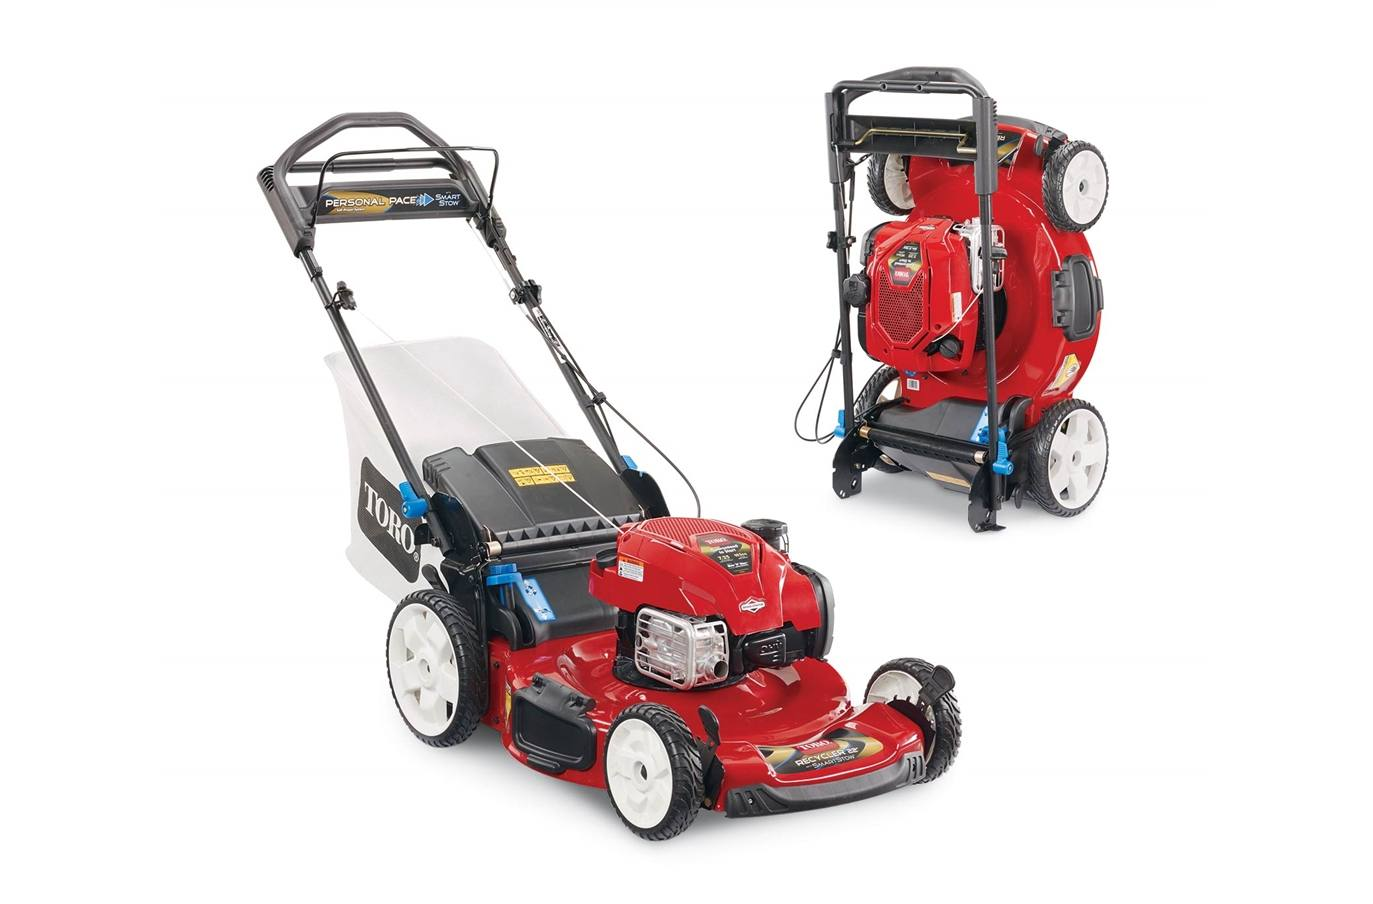 hight resolution of 22 smartstow personal pace high wheel 20340 toro